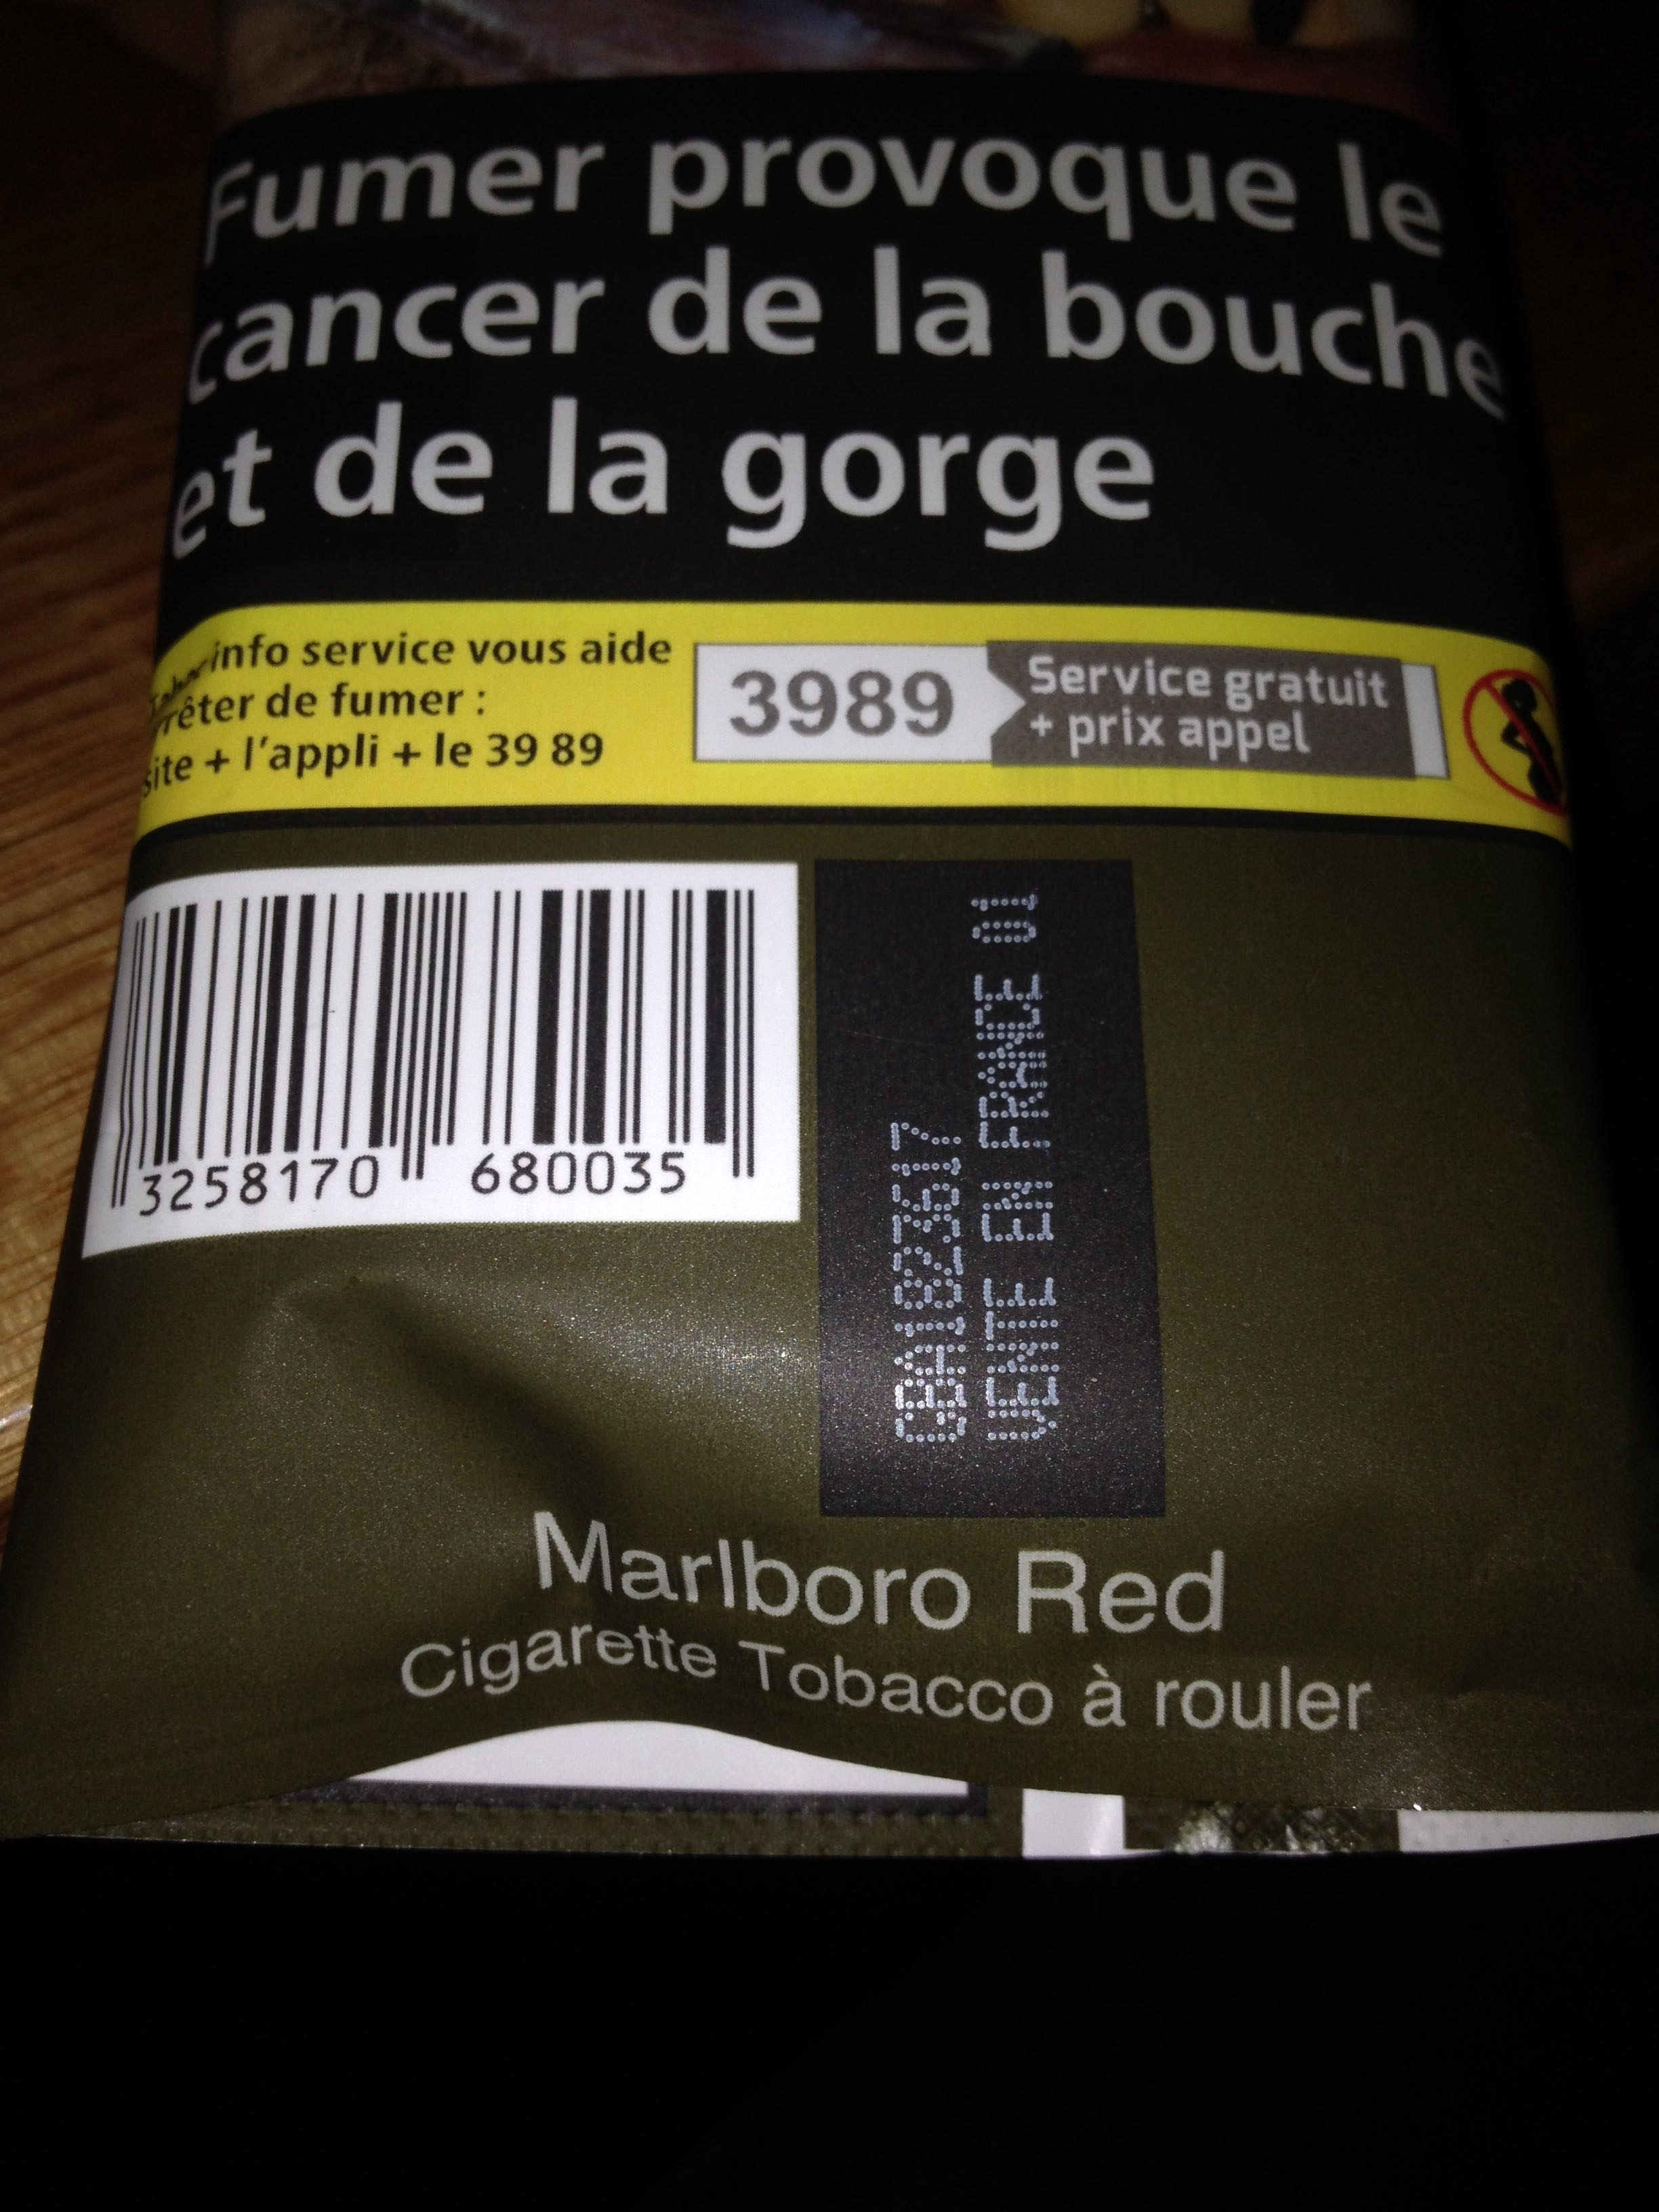 Cigarette tabacco a rouler - Product - fr